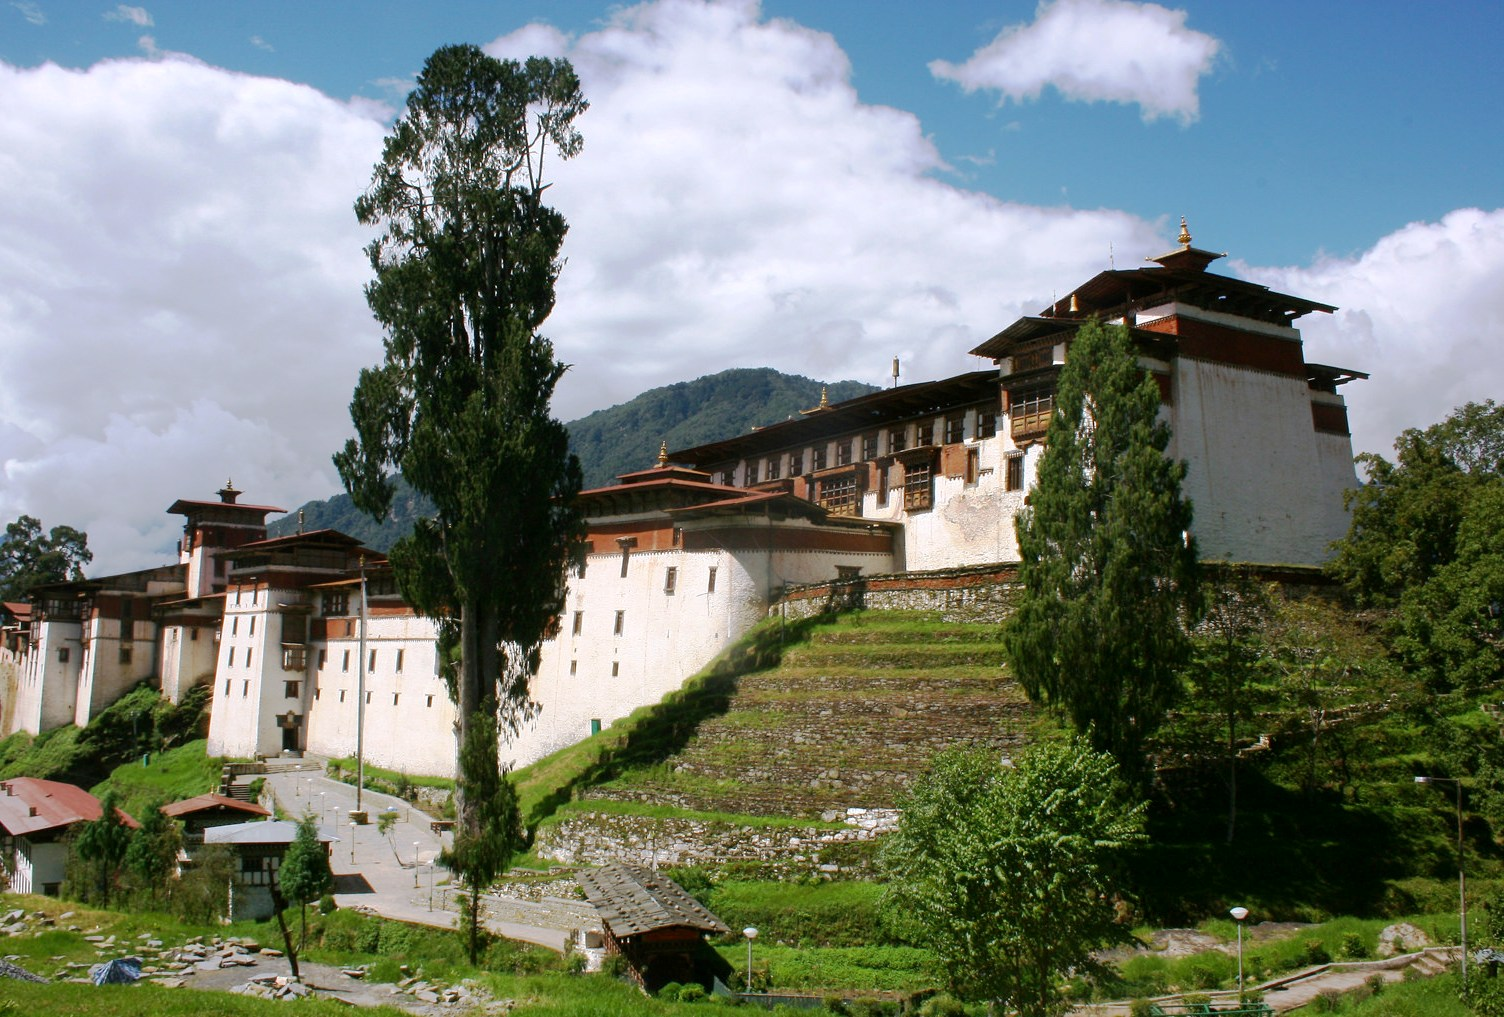 Bhutan Travel 8 days : Paro Thimphu Trongsa Tour